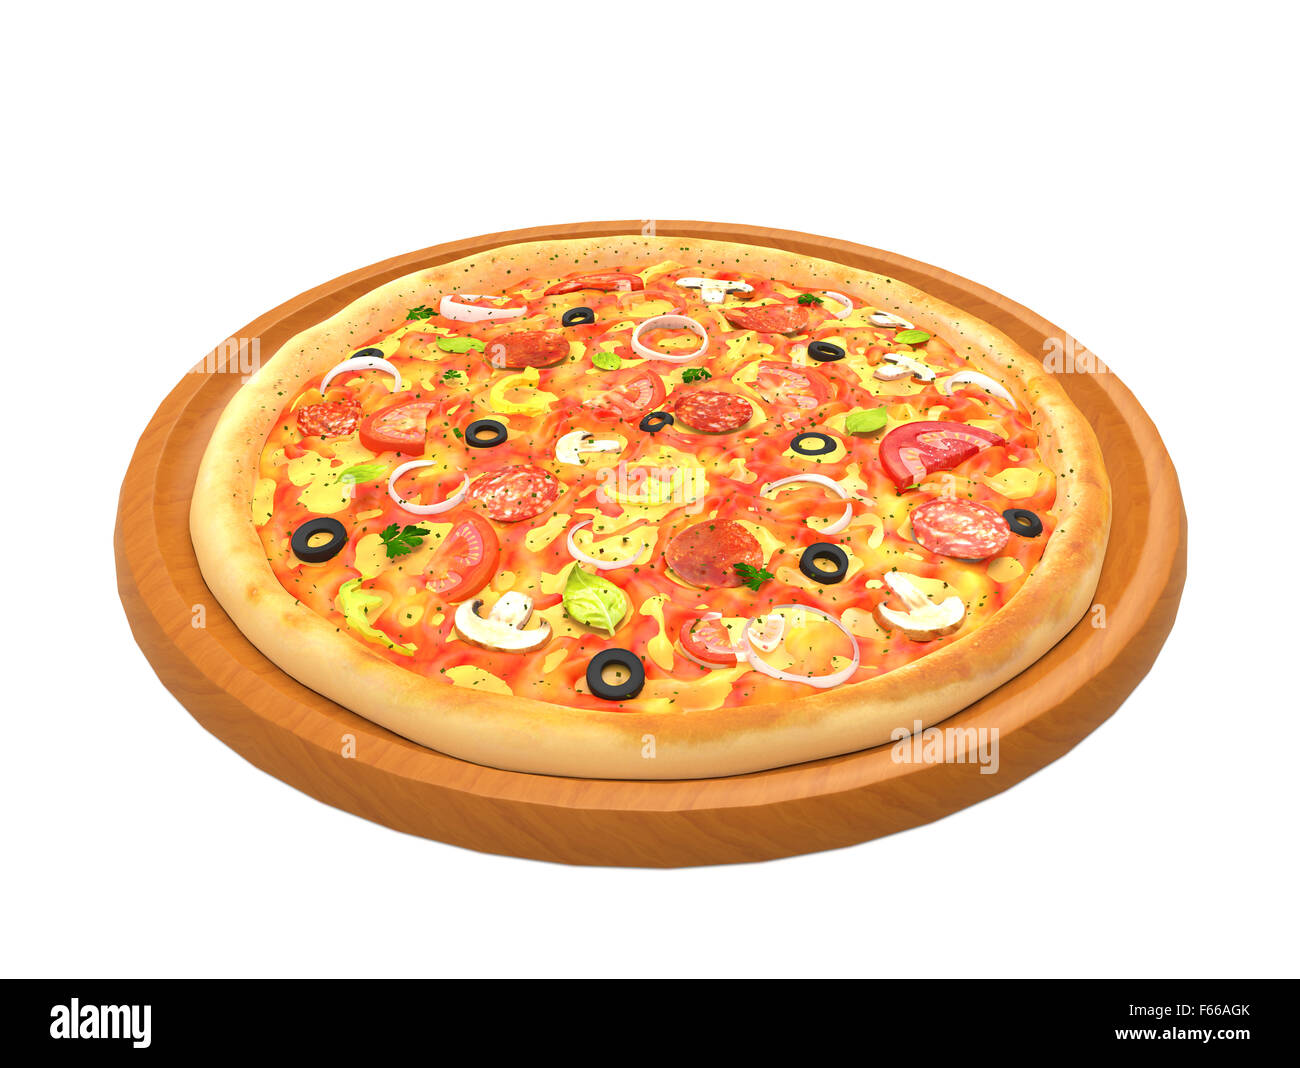 Pizza on a wooden plate  sc 1 st  Alamy & Pizza on a wooden plate Stock Photo: 89879795 - Alamy